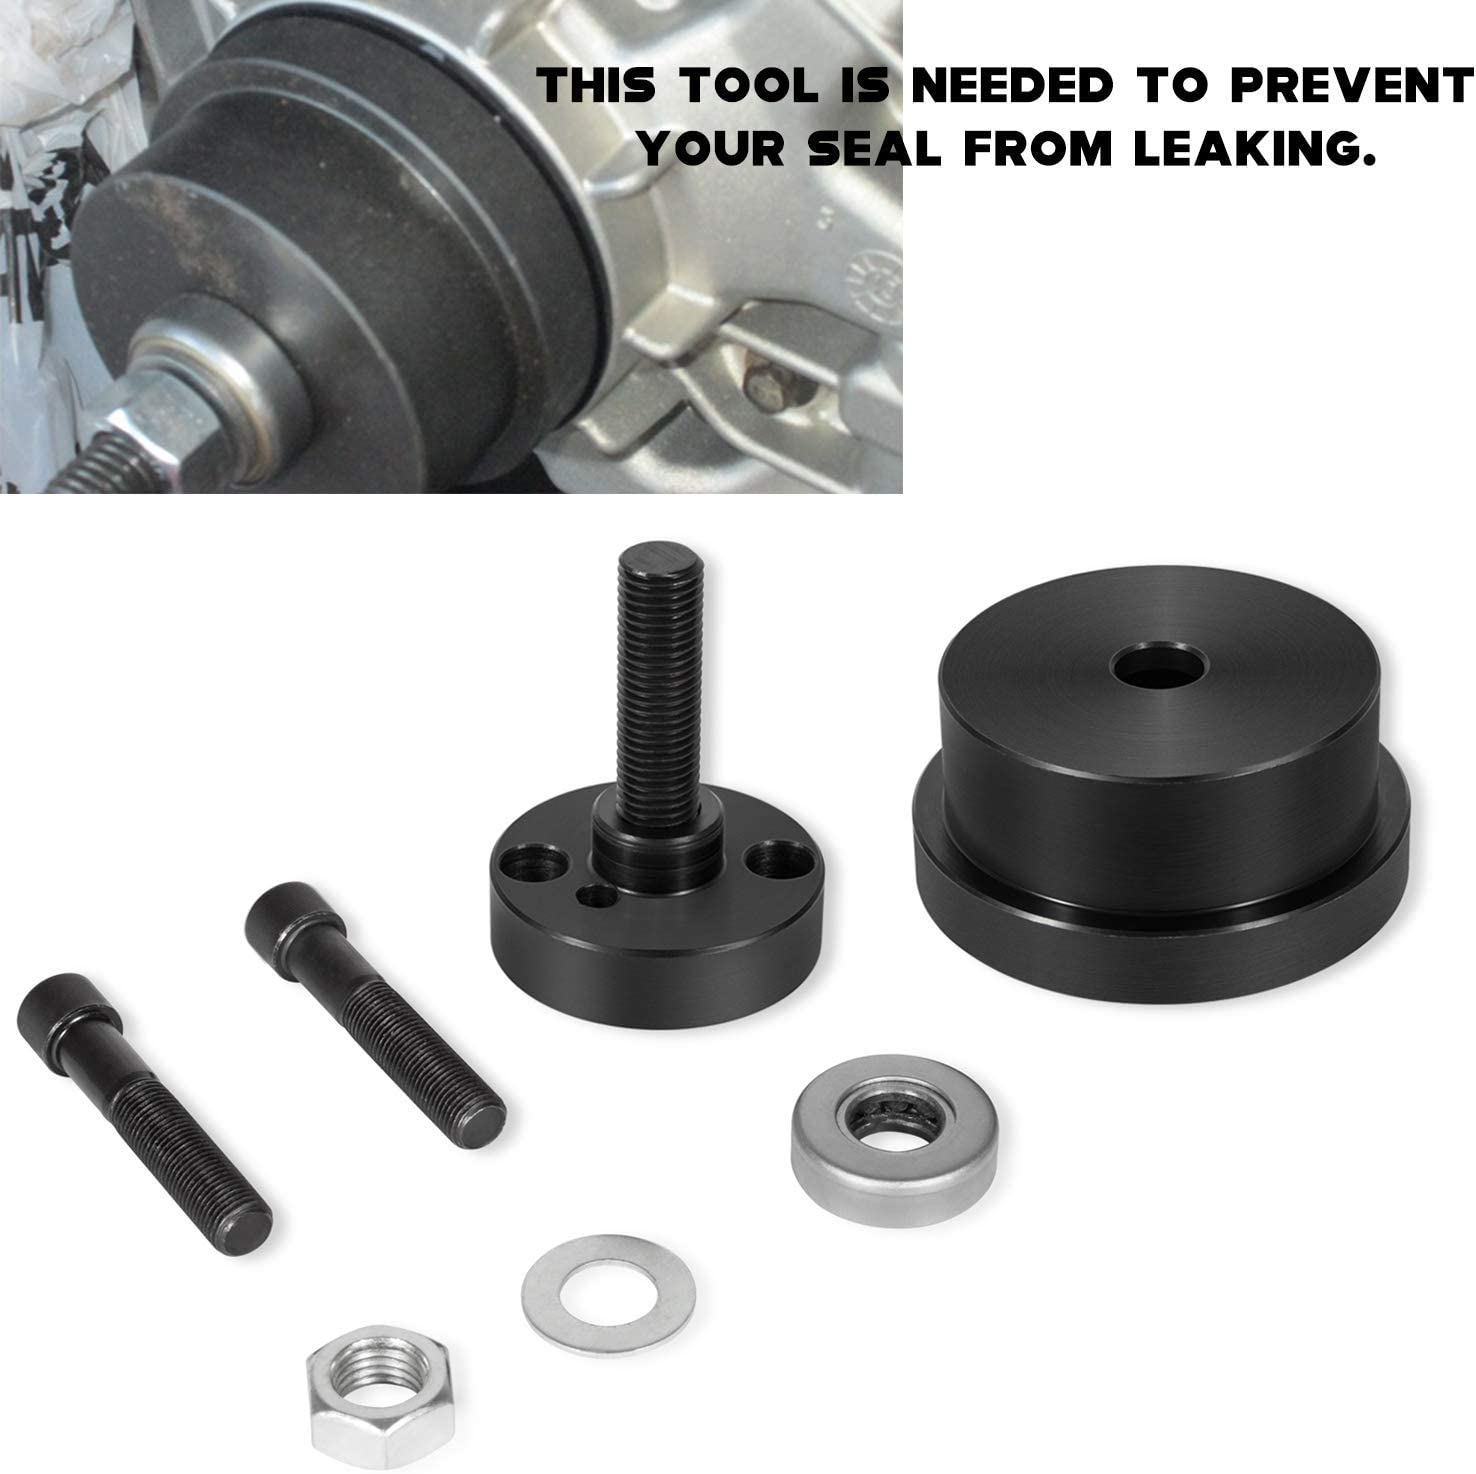 Rear Main Seal Installer Tool Fit for Ford 4.5L 6.0L Similar to 303-770 6.4L Powerstroke Rear Crankshaft Seal /& Wear Ring Installer